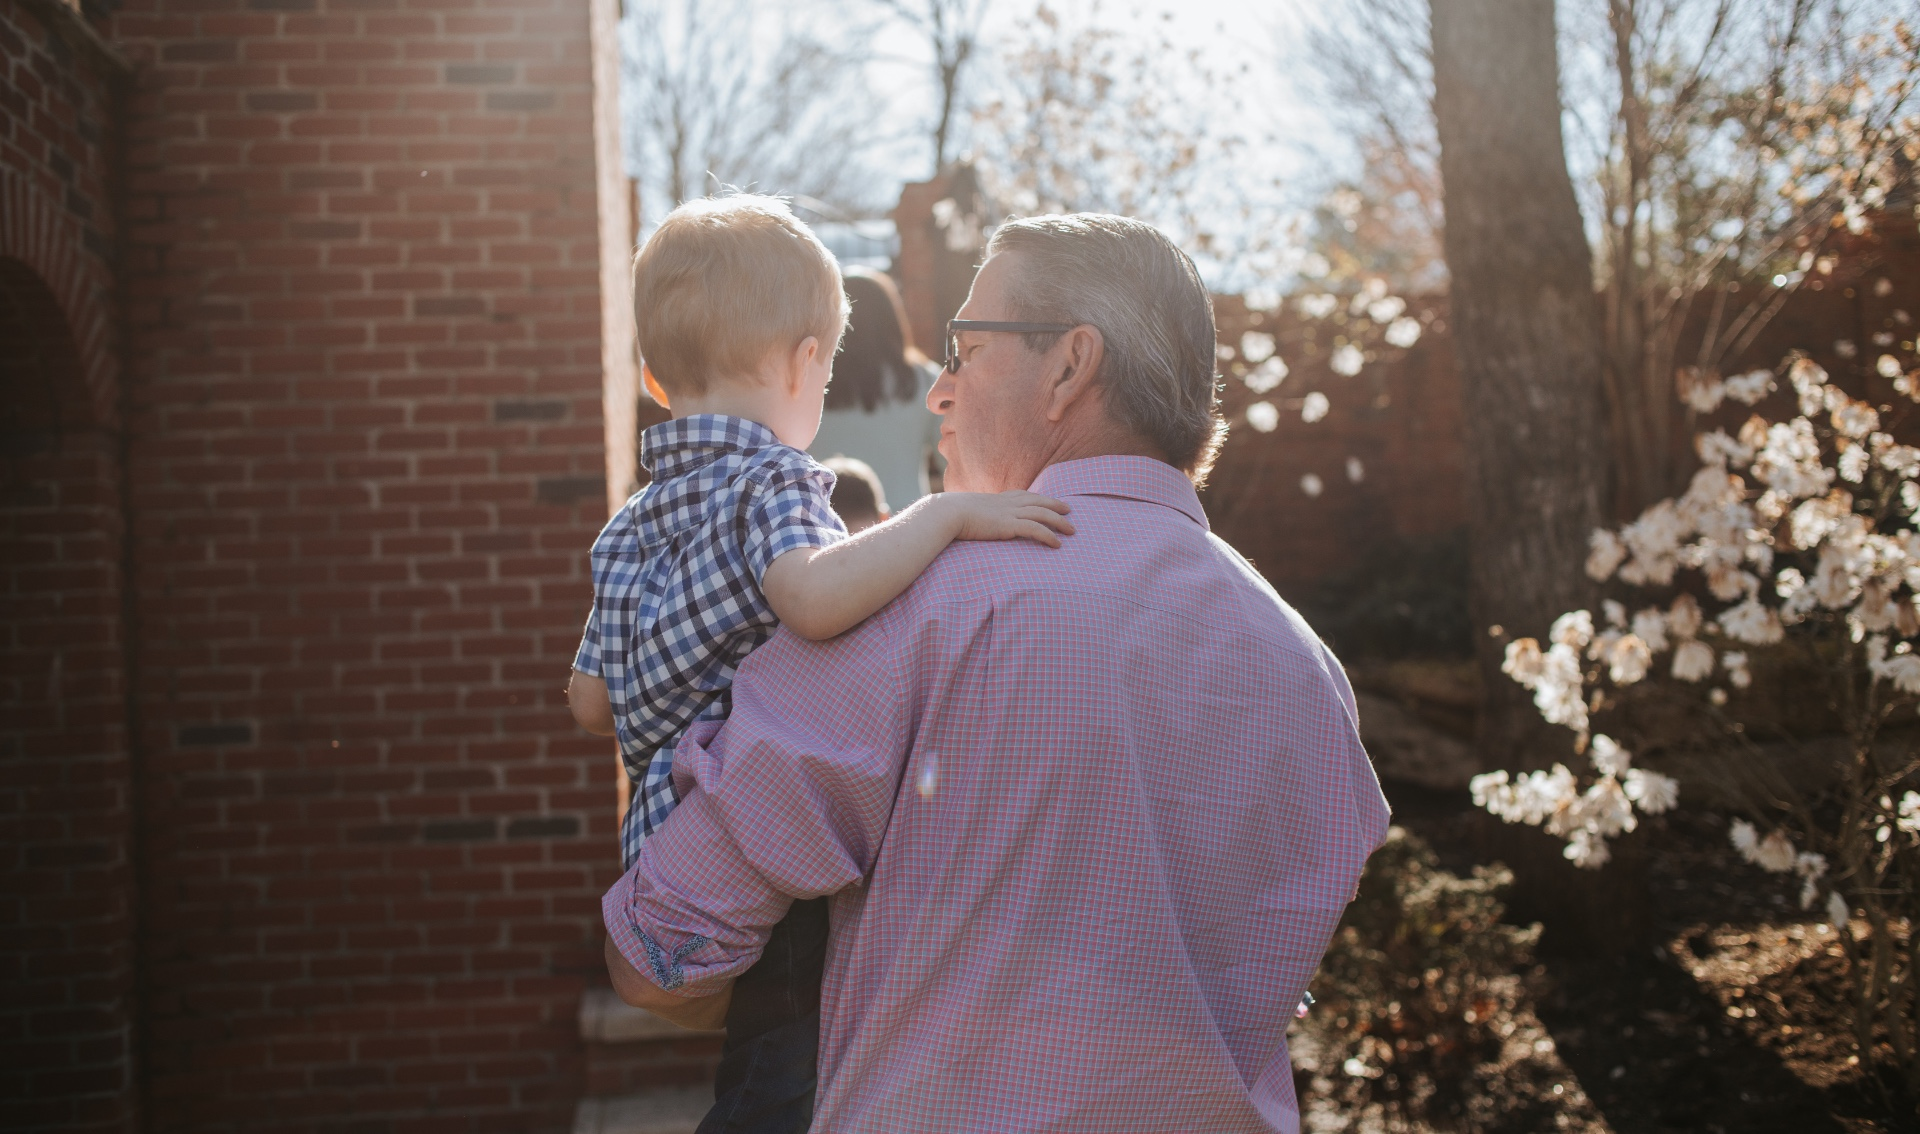 Using one arm, Dr. Johnson carries his grandson outside.